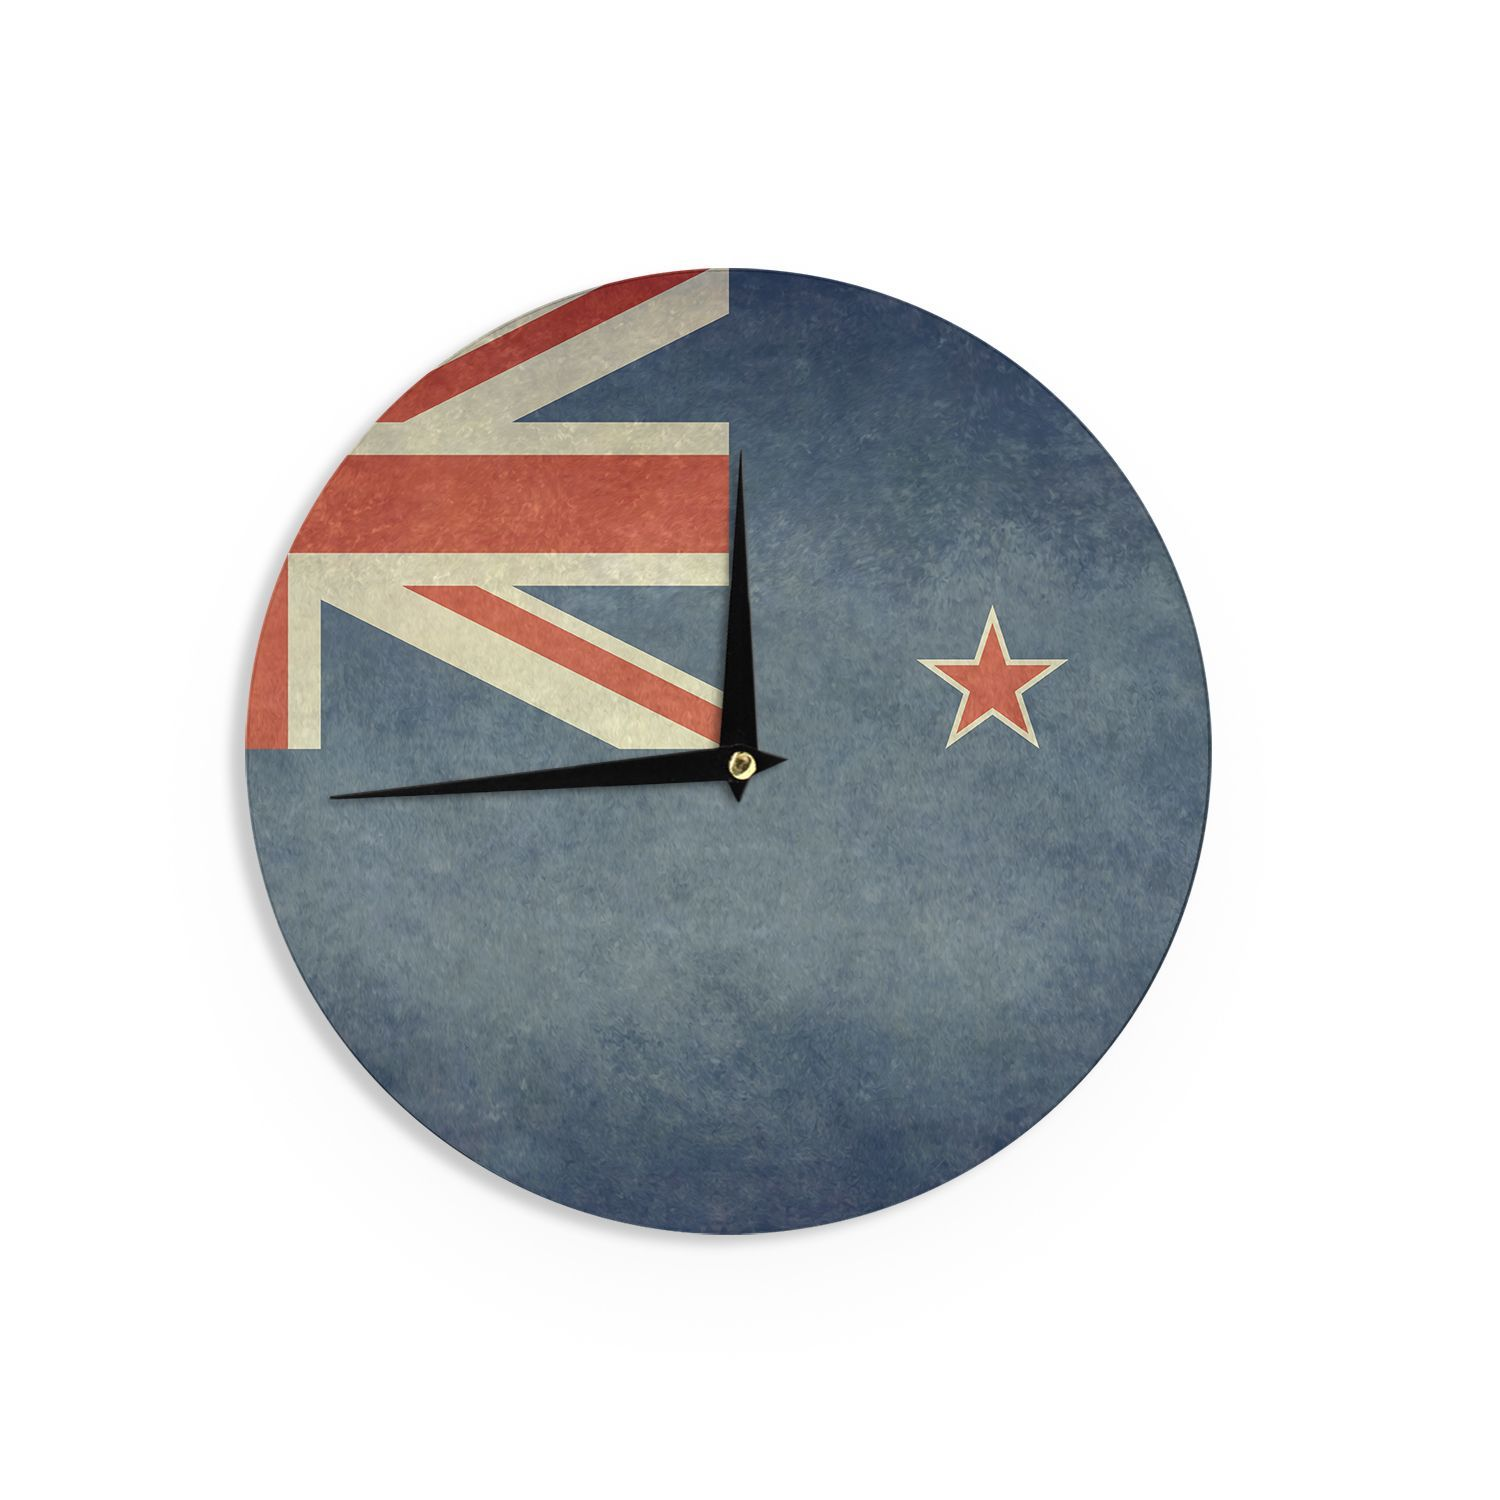 "Kess InHouse Bruce Stanfield Flag of New Zealand"" Blue Wall Clock 12"" (Flag of New Zealand) (Wood)"